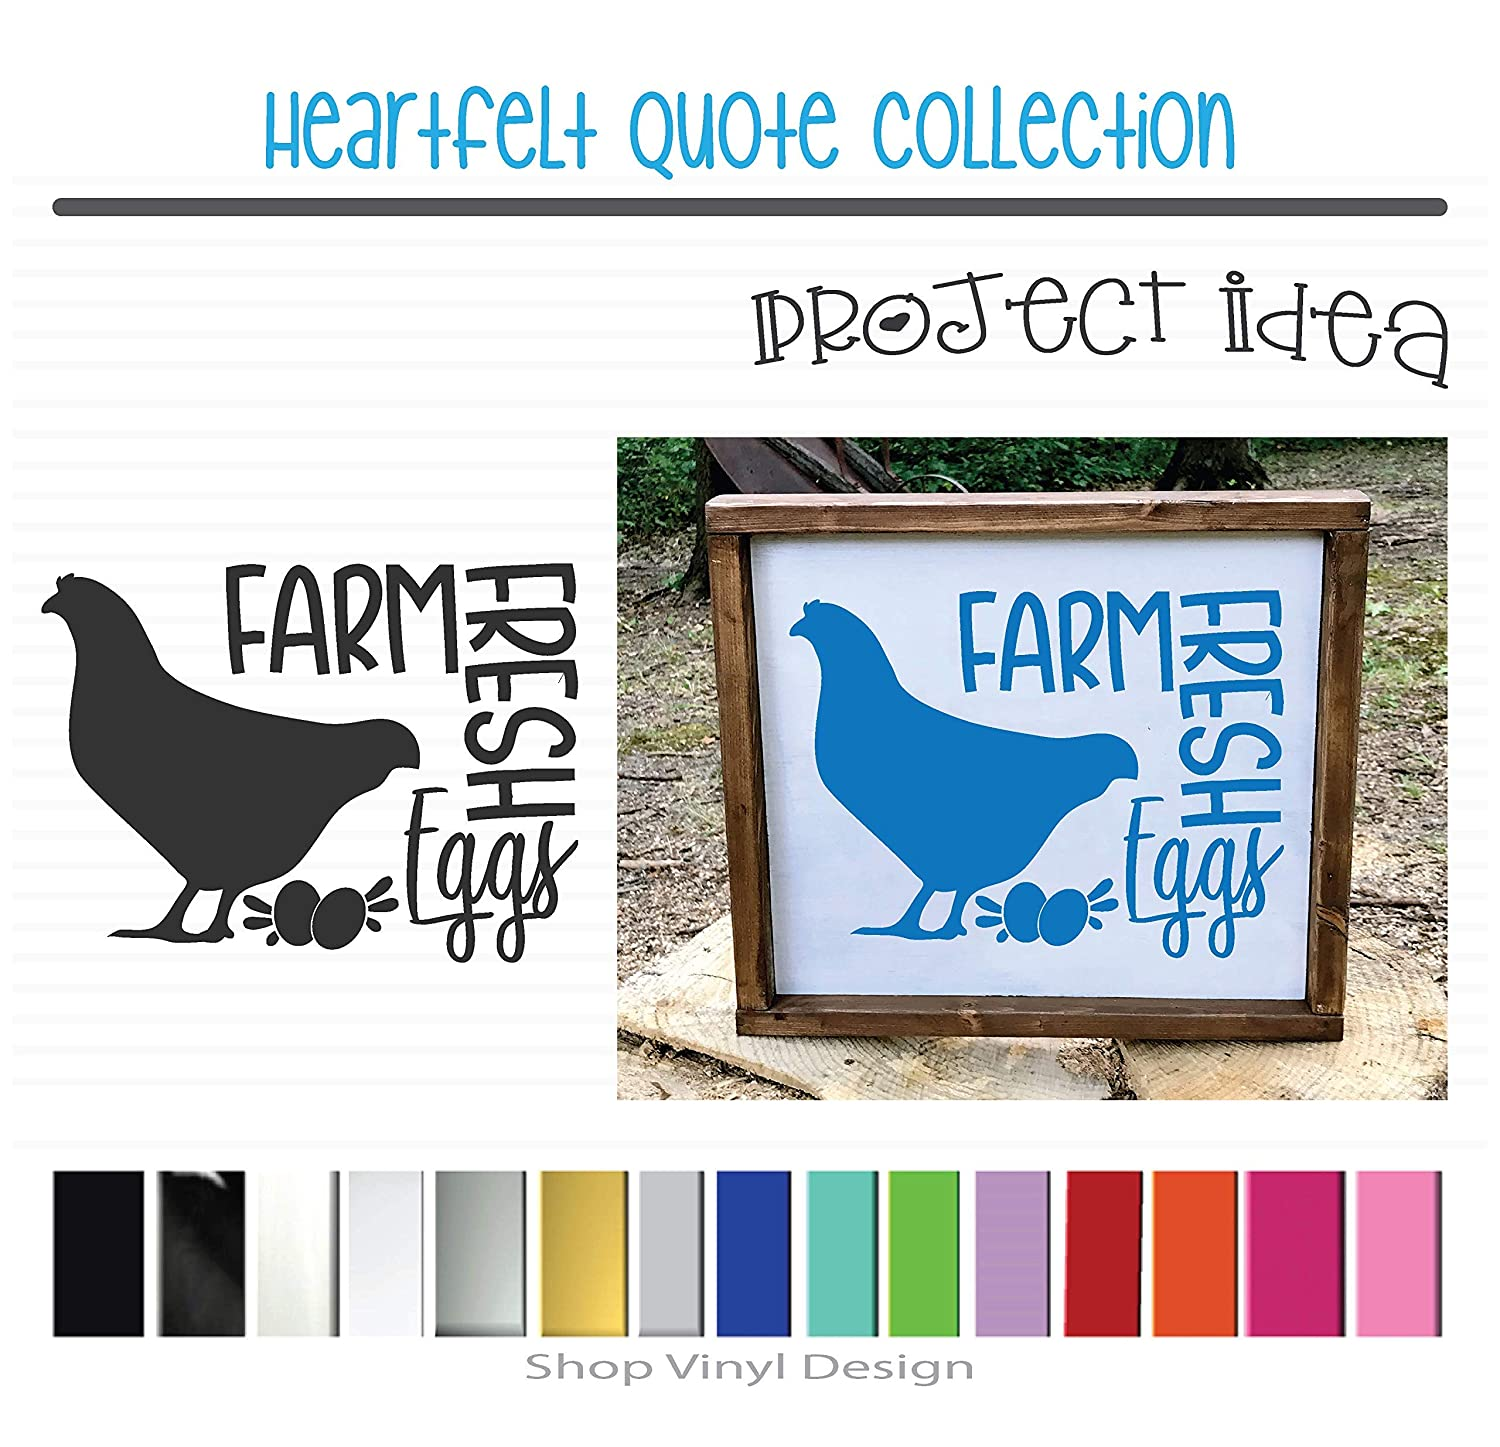 Sized for Farmhouse Vinyl Graphic Decal Sticker Can be Used for Vehicle Window Cooler Mirror Safe || High Quality Outdoor Rated Vinyl Chicken Farm Fresh Eggs Canvas Metal or Framed Sign